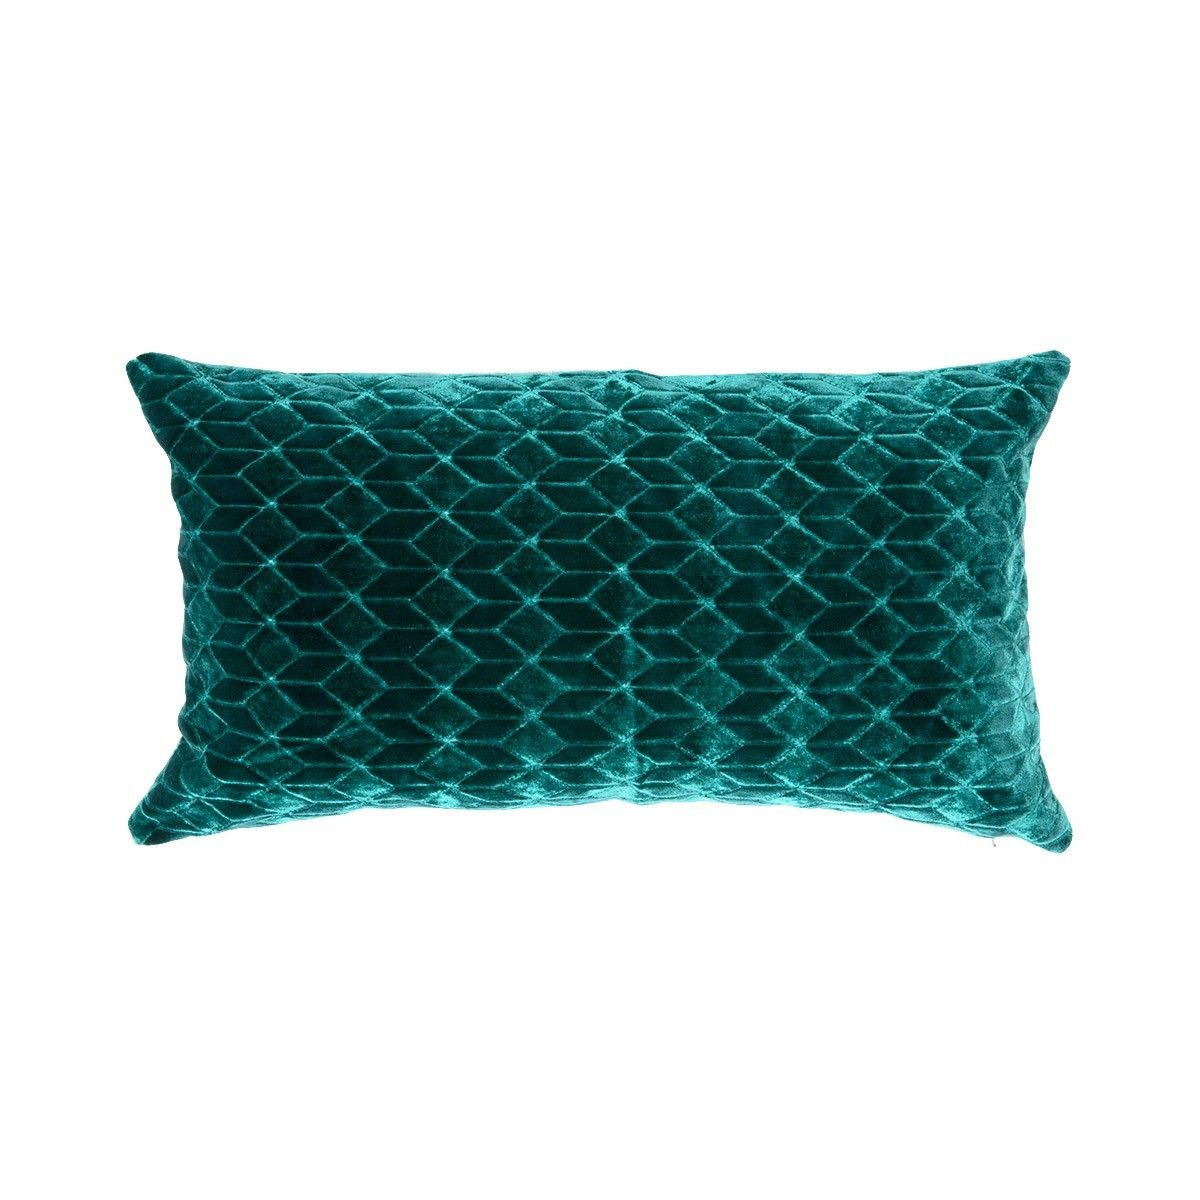 Iosis by yves delorme emerald green rectangular decorative velour